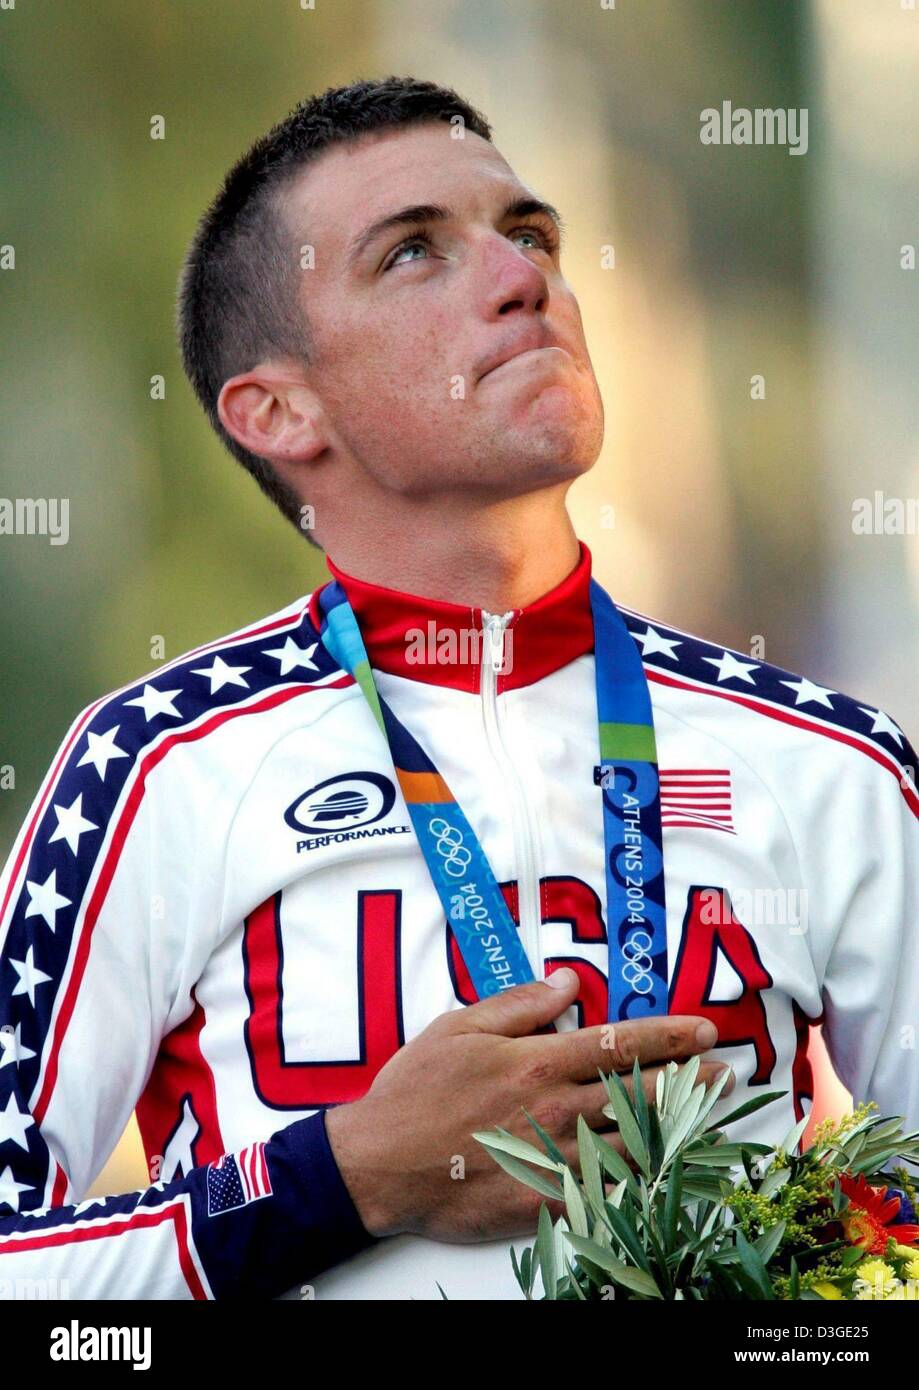 (dpa files) - Gold medal winner Tyler Hamilton of the USA at the medal ceremony of the Cycling Time Trial event - Stock Image